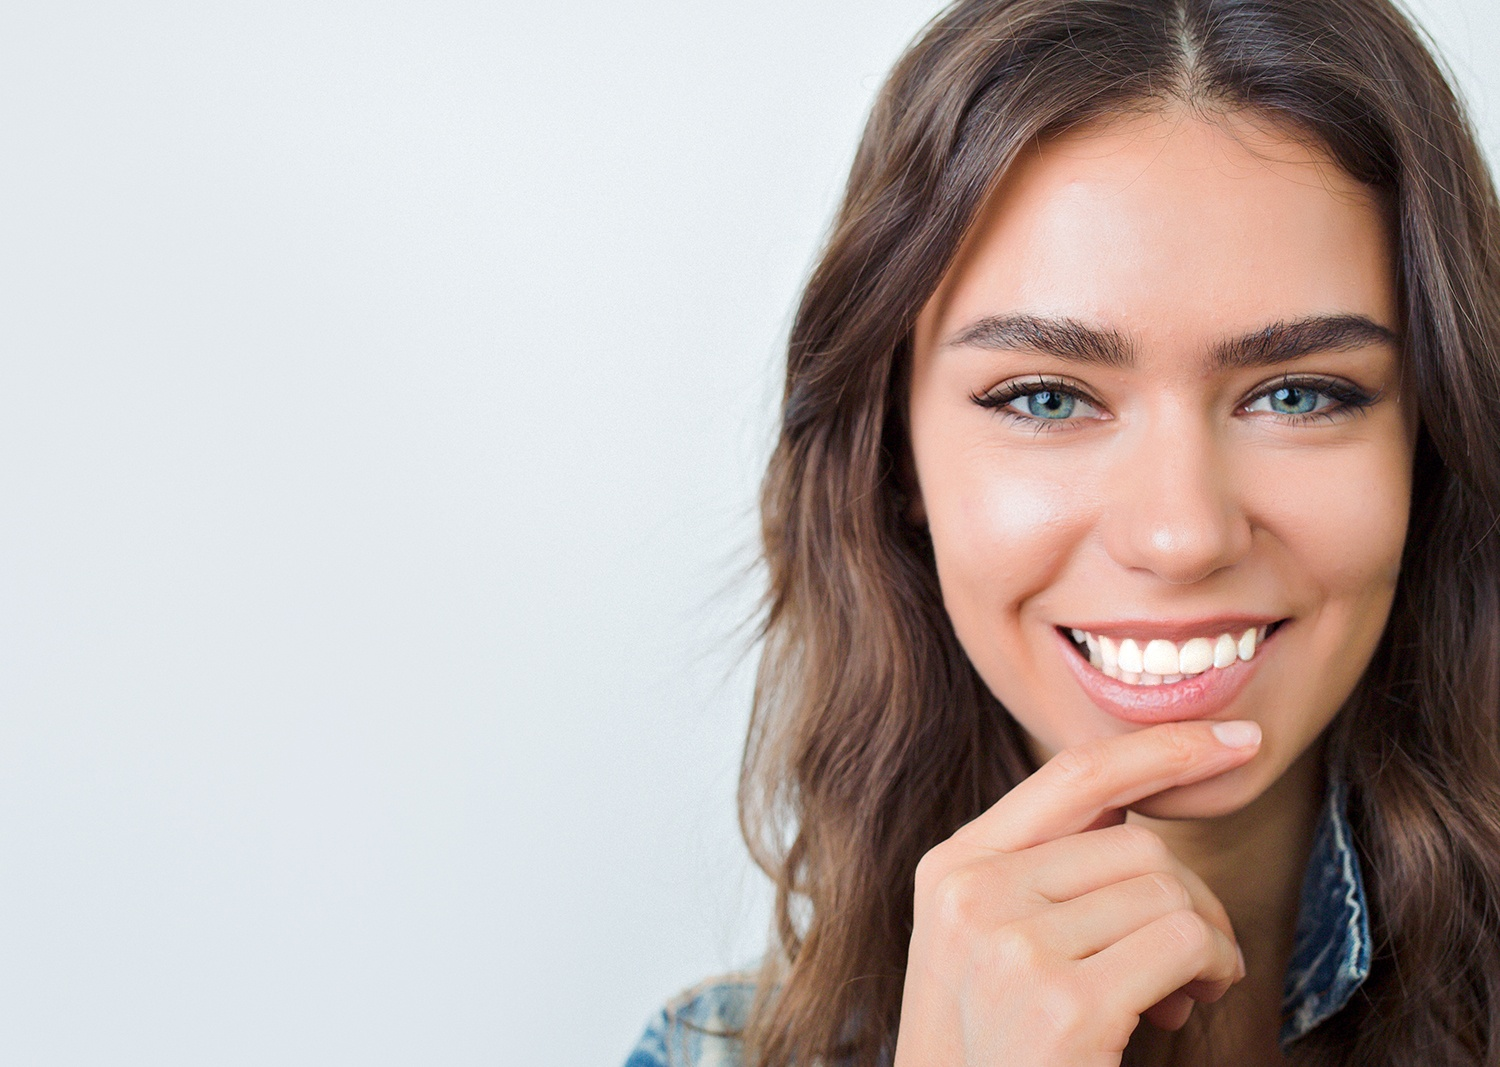 We provide high-quality dental care that includes aftercare checkups and support that ensure the patient is happy and content with the result of their treatment.